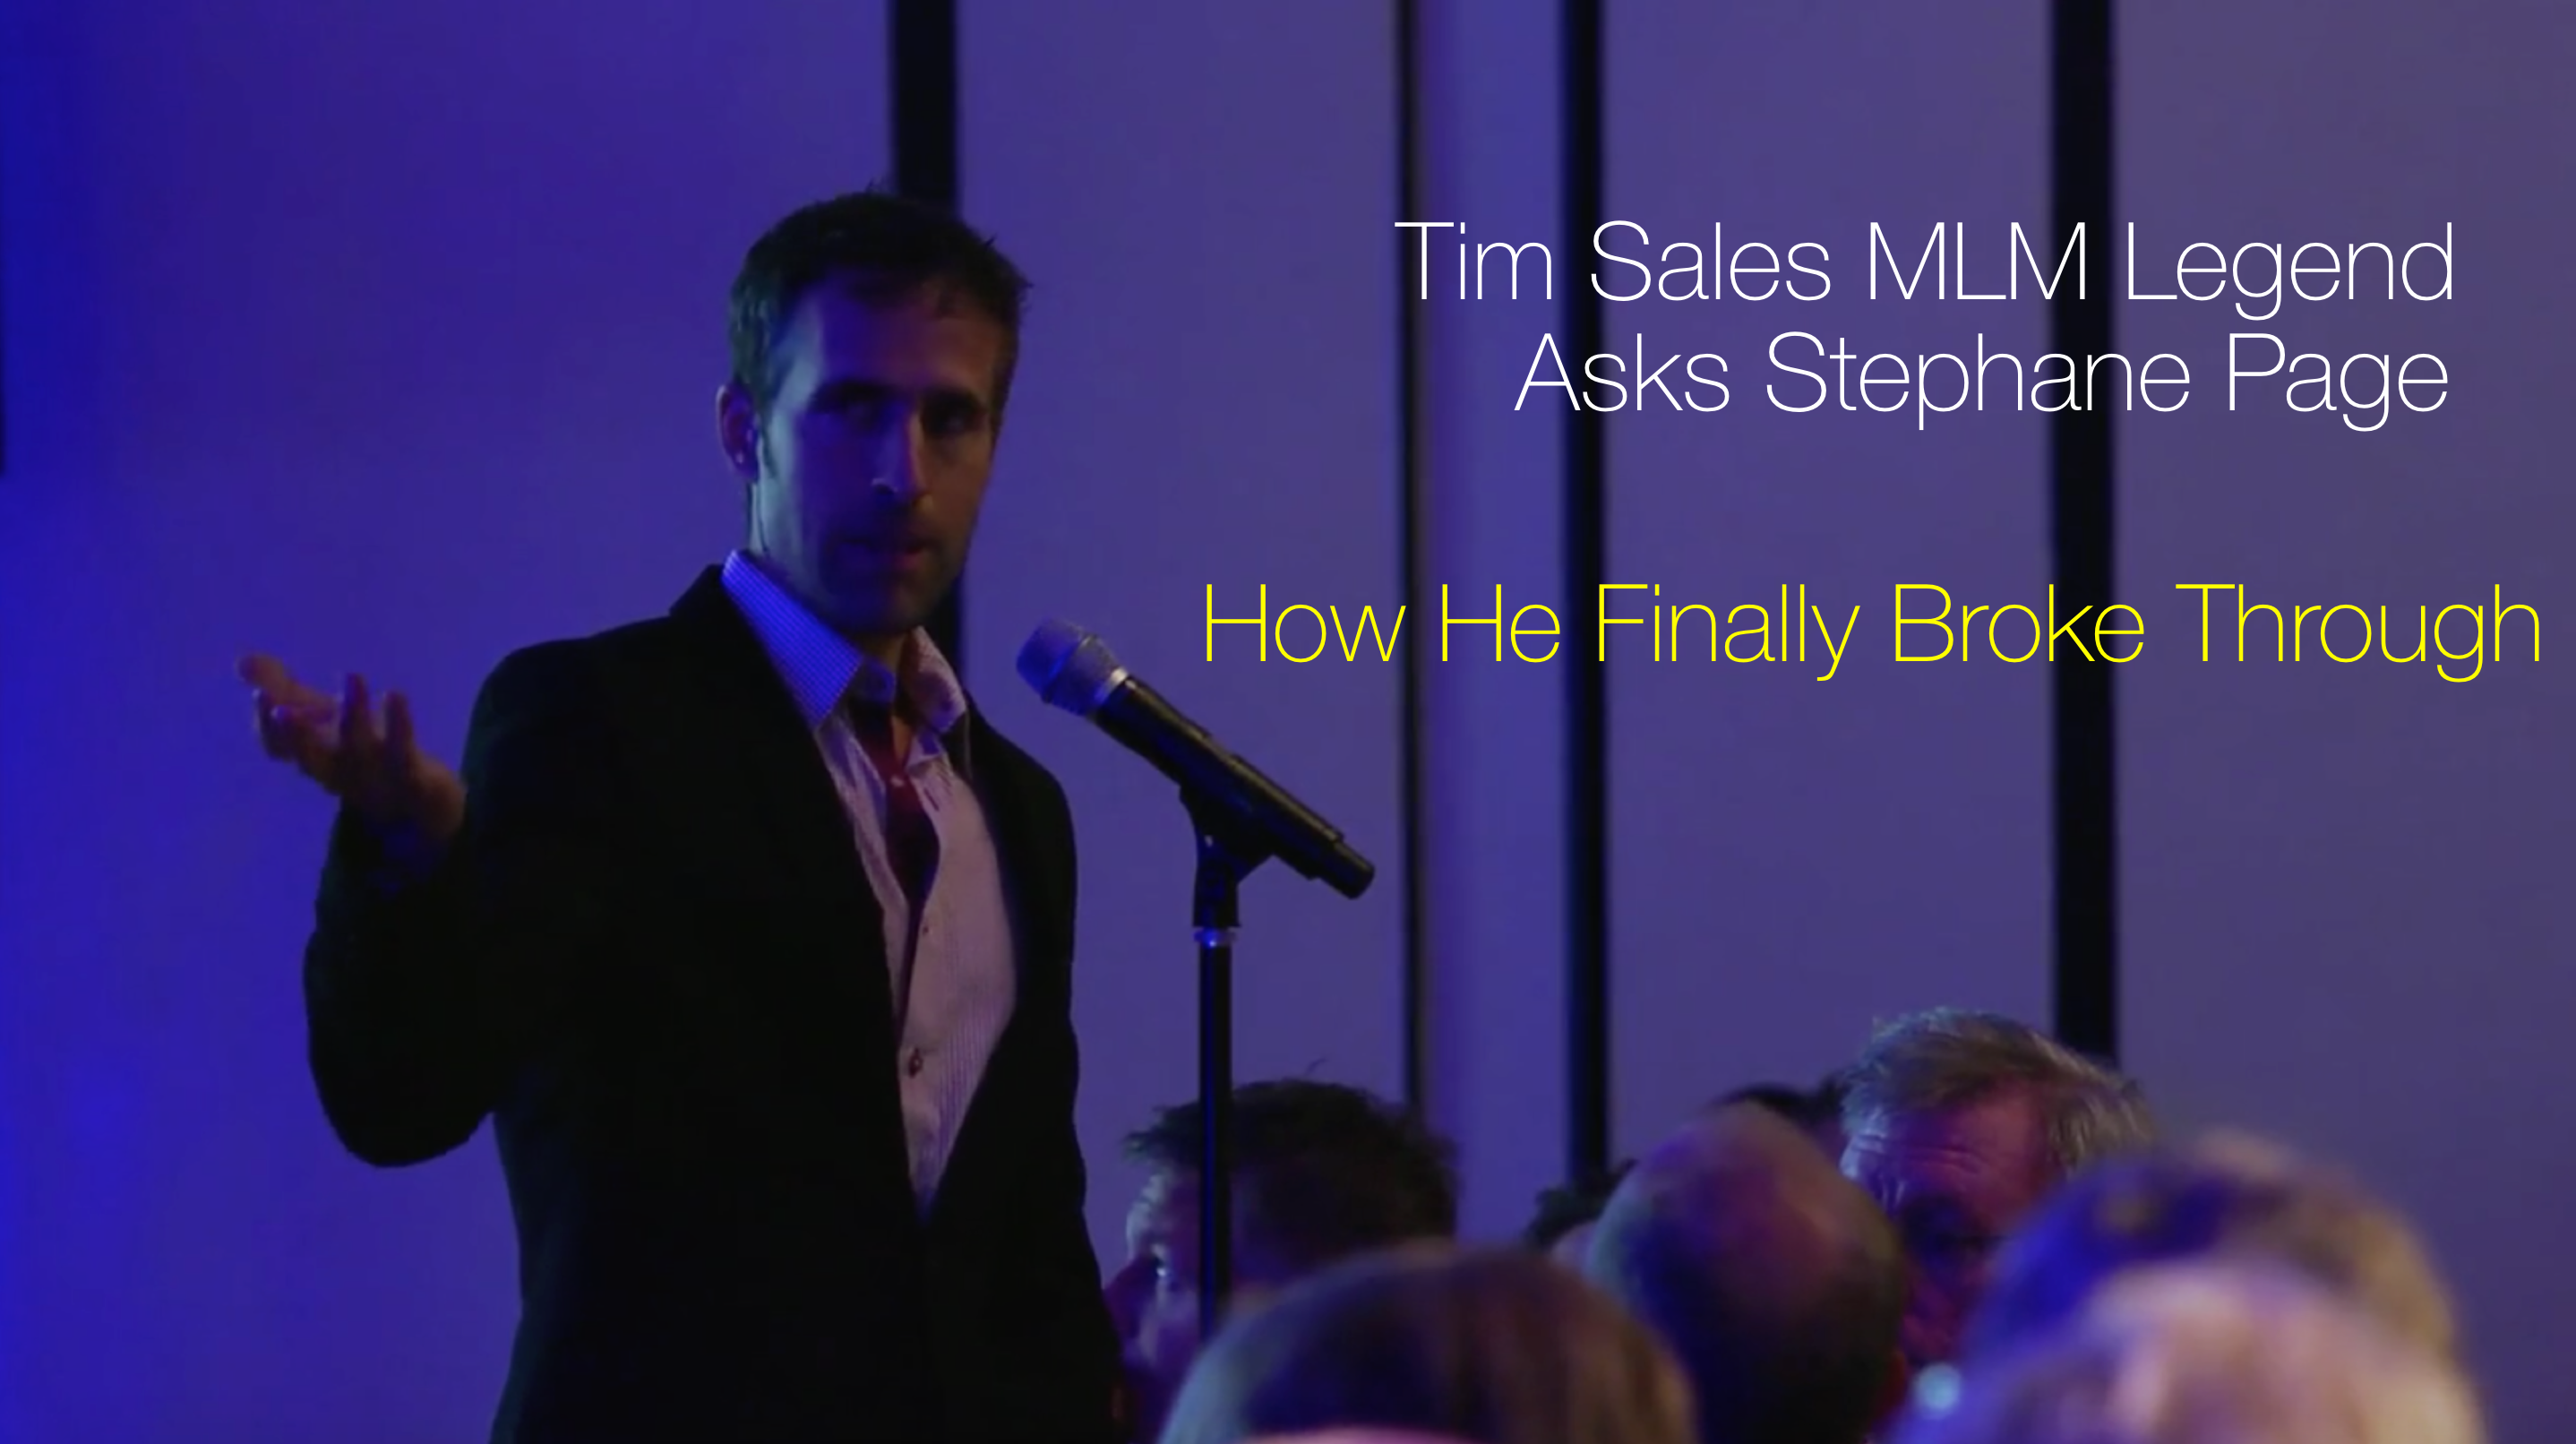 Tim Sales MLM Leader